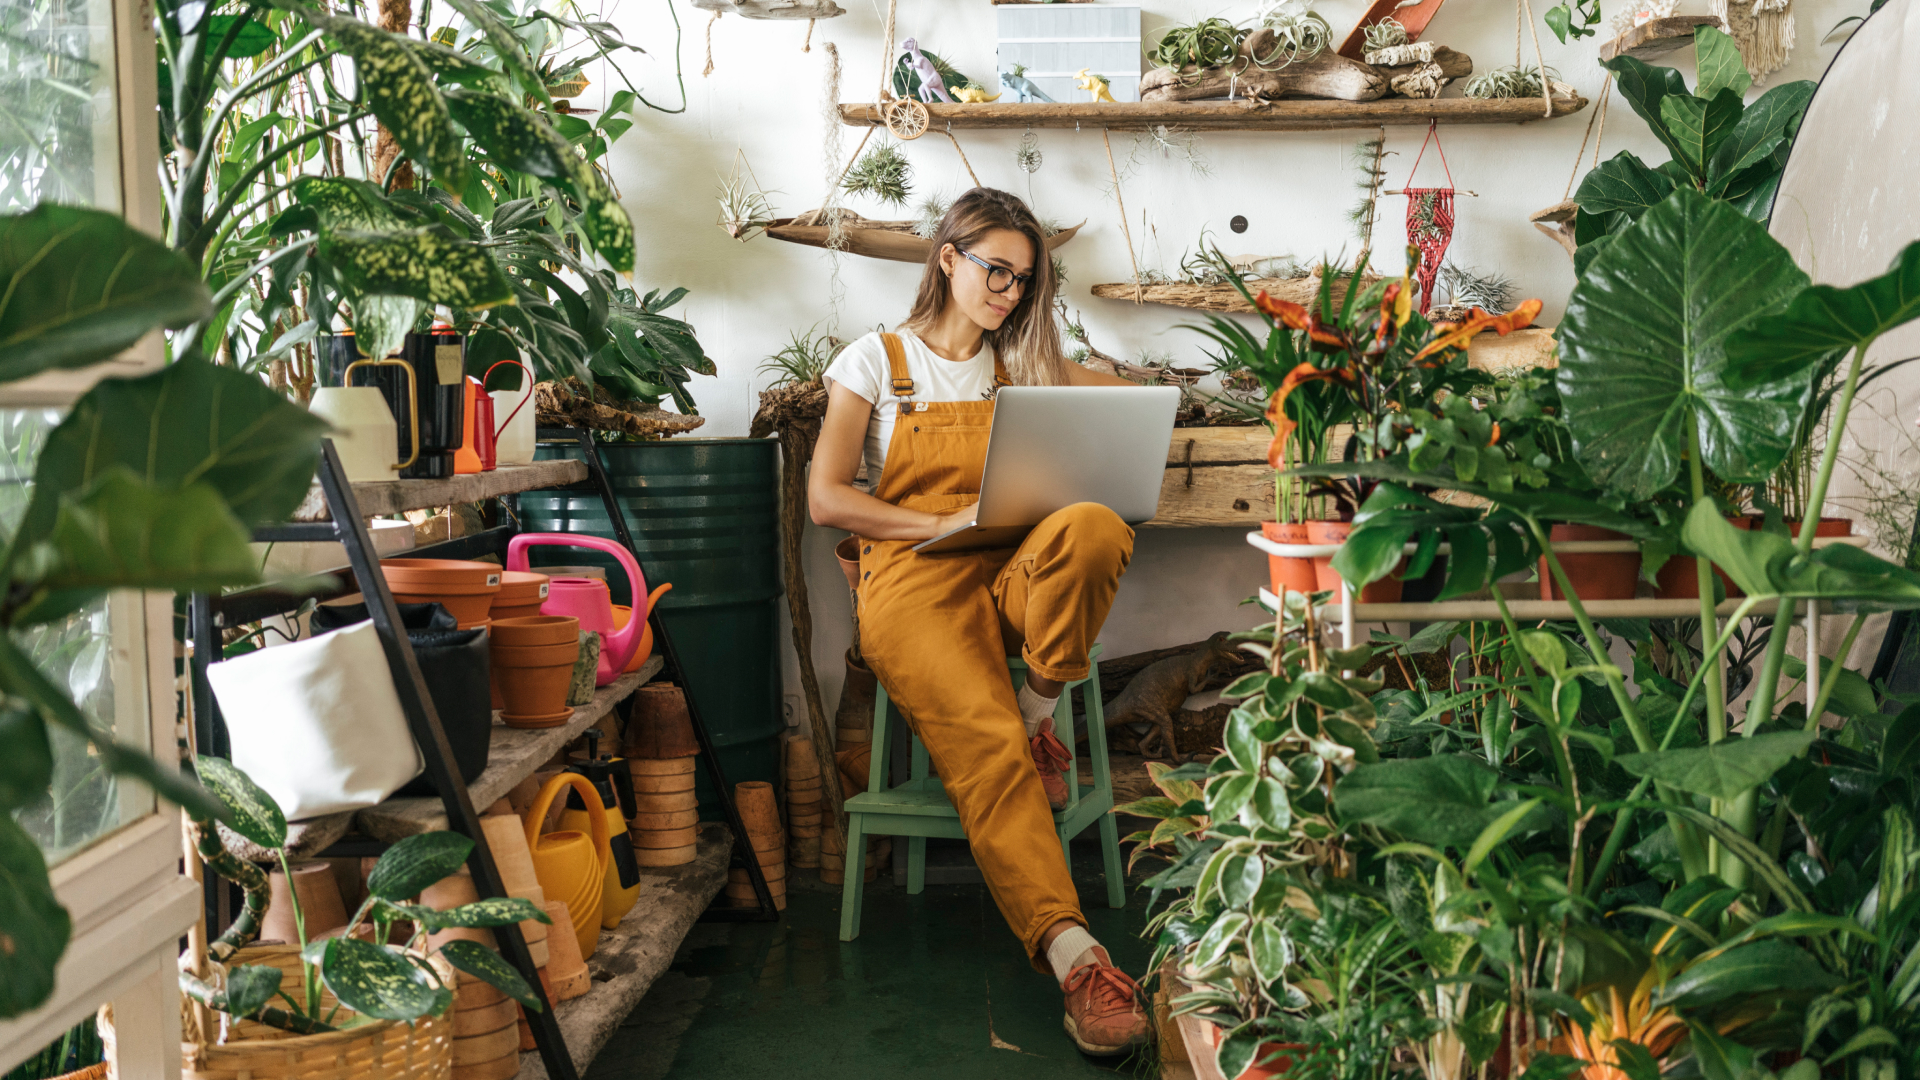 Image of woman on laptop with plants in the background